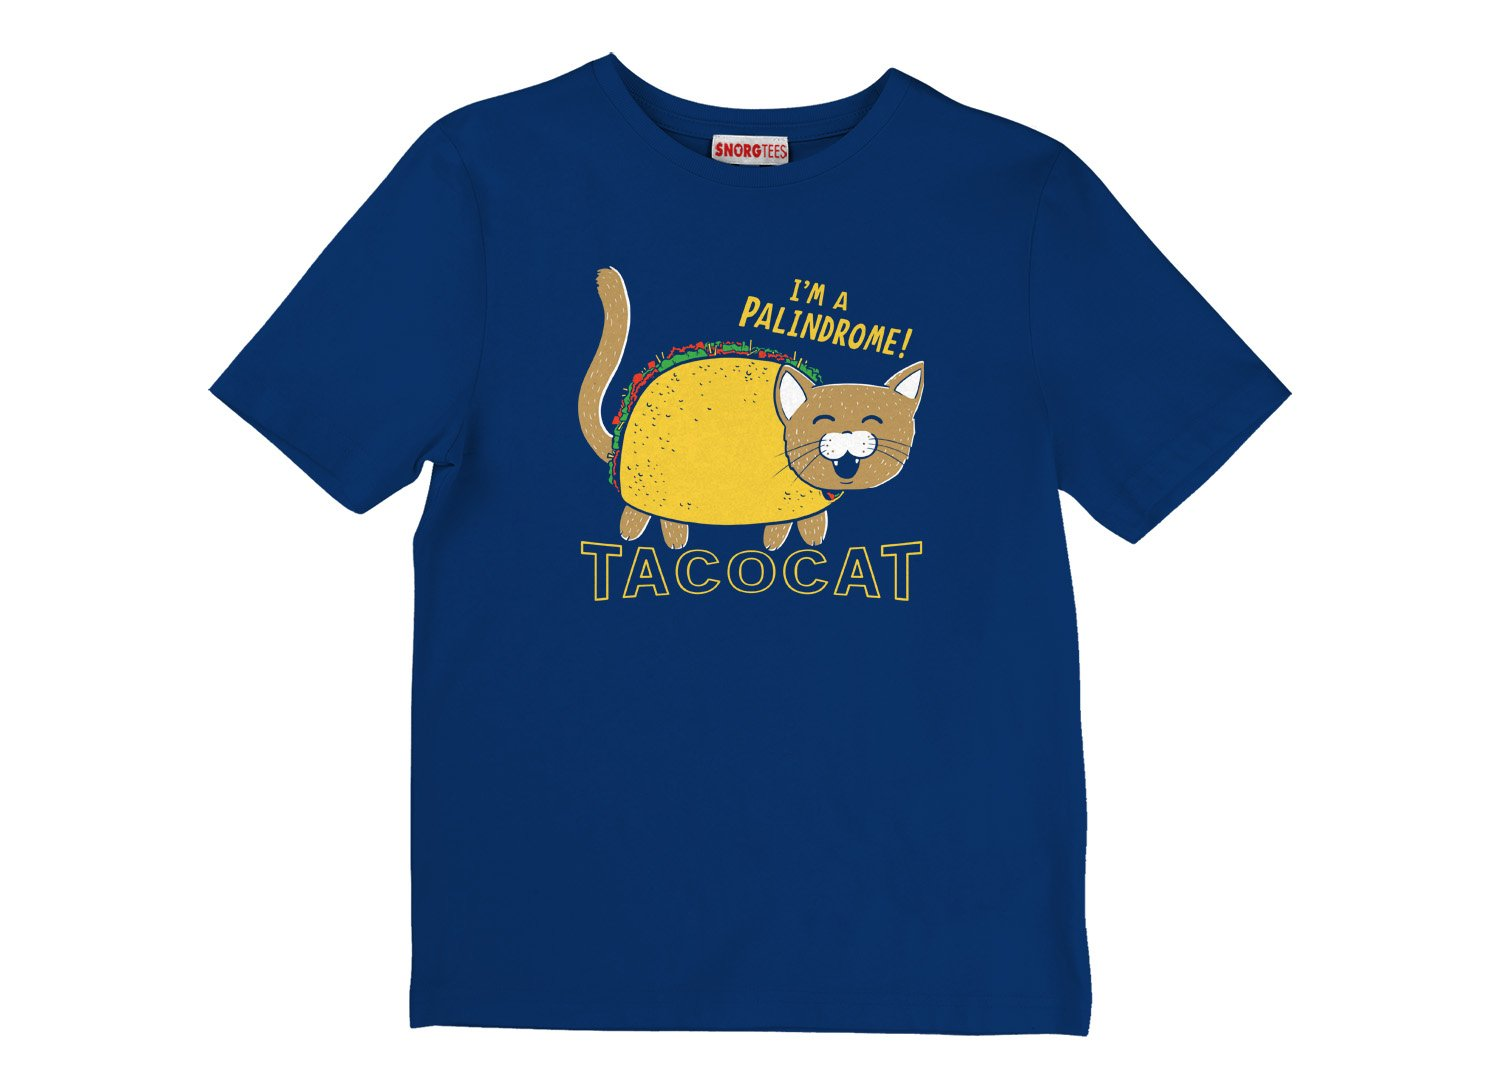 Taco Cat on Kids T-Shirt